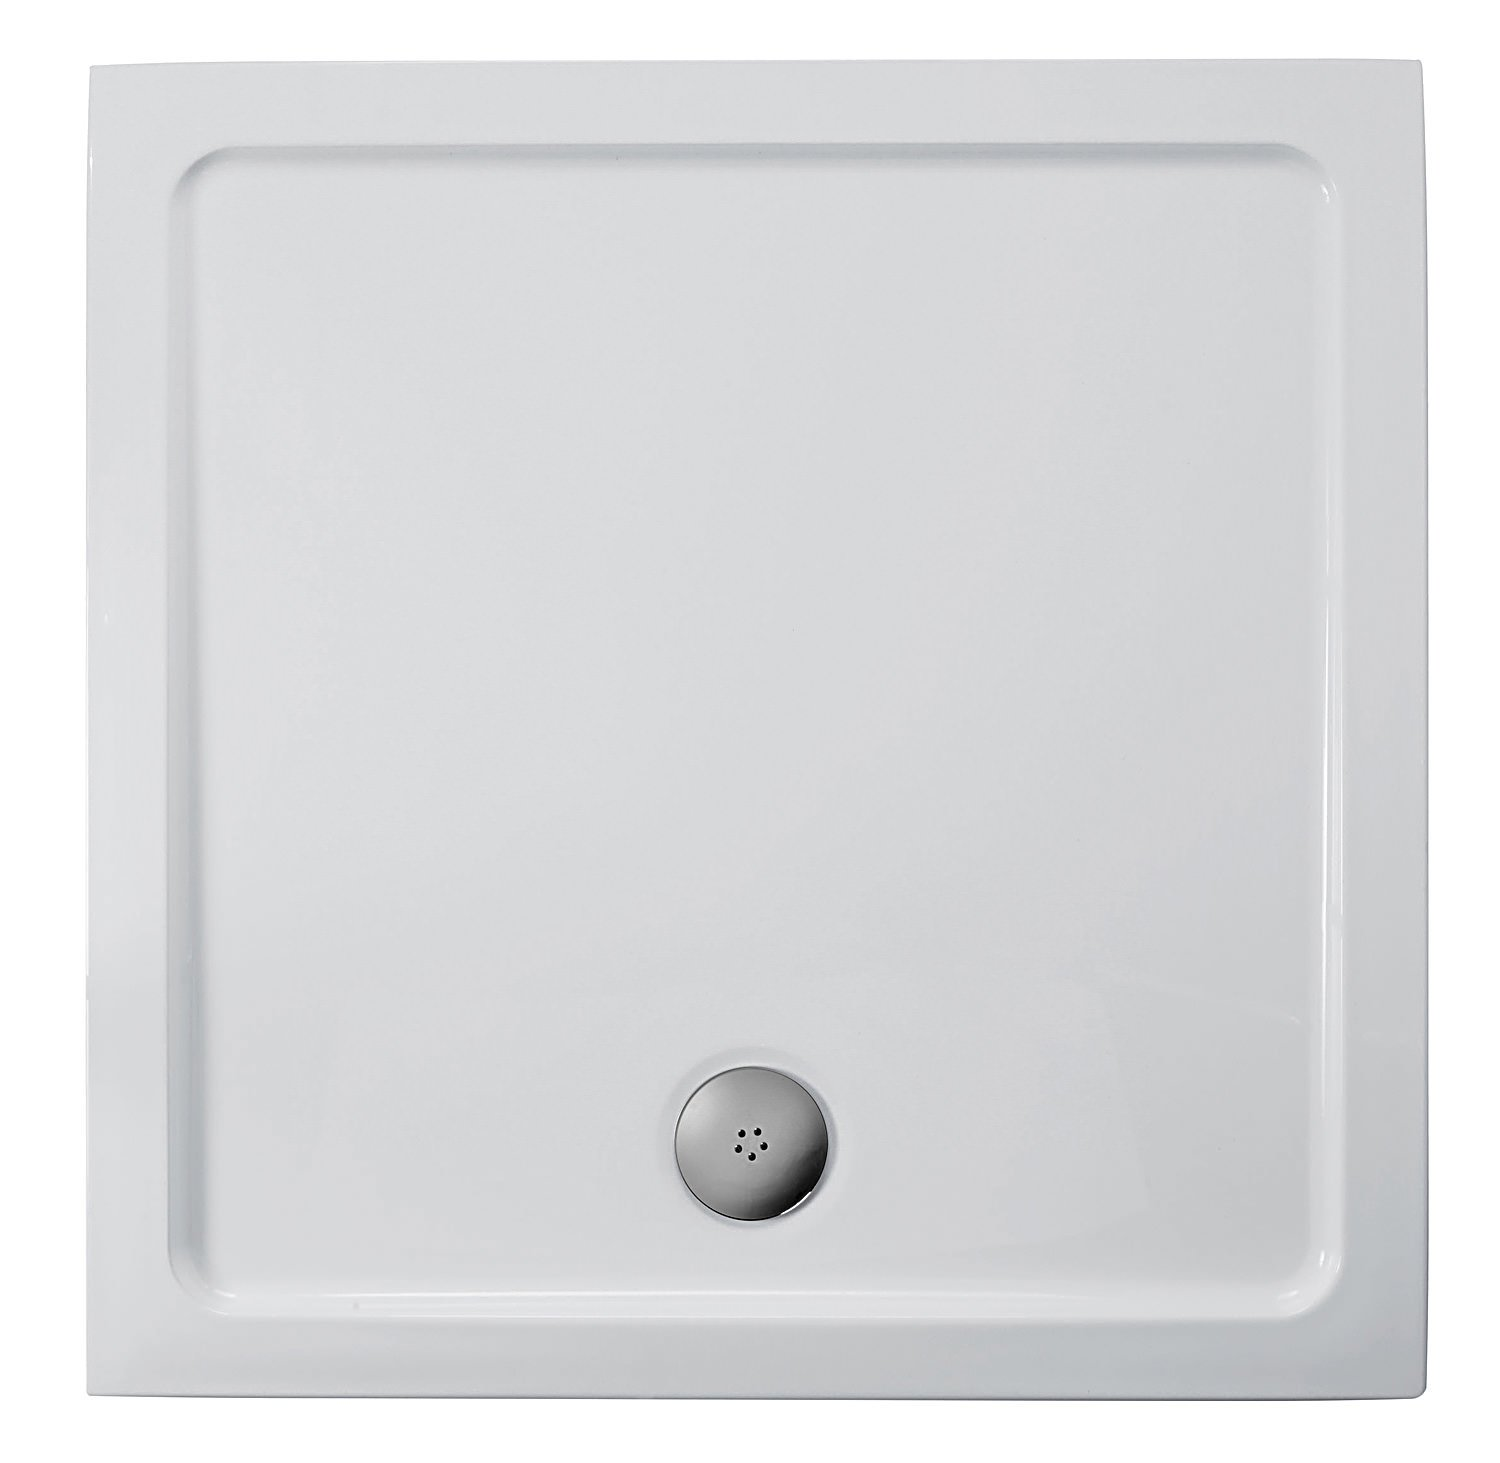 Merveilleux Ideal Standard Simplicity 800mm Flat Top Square Shower Tray With Waste